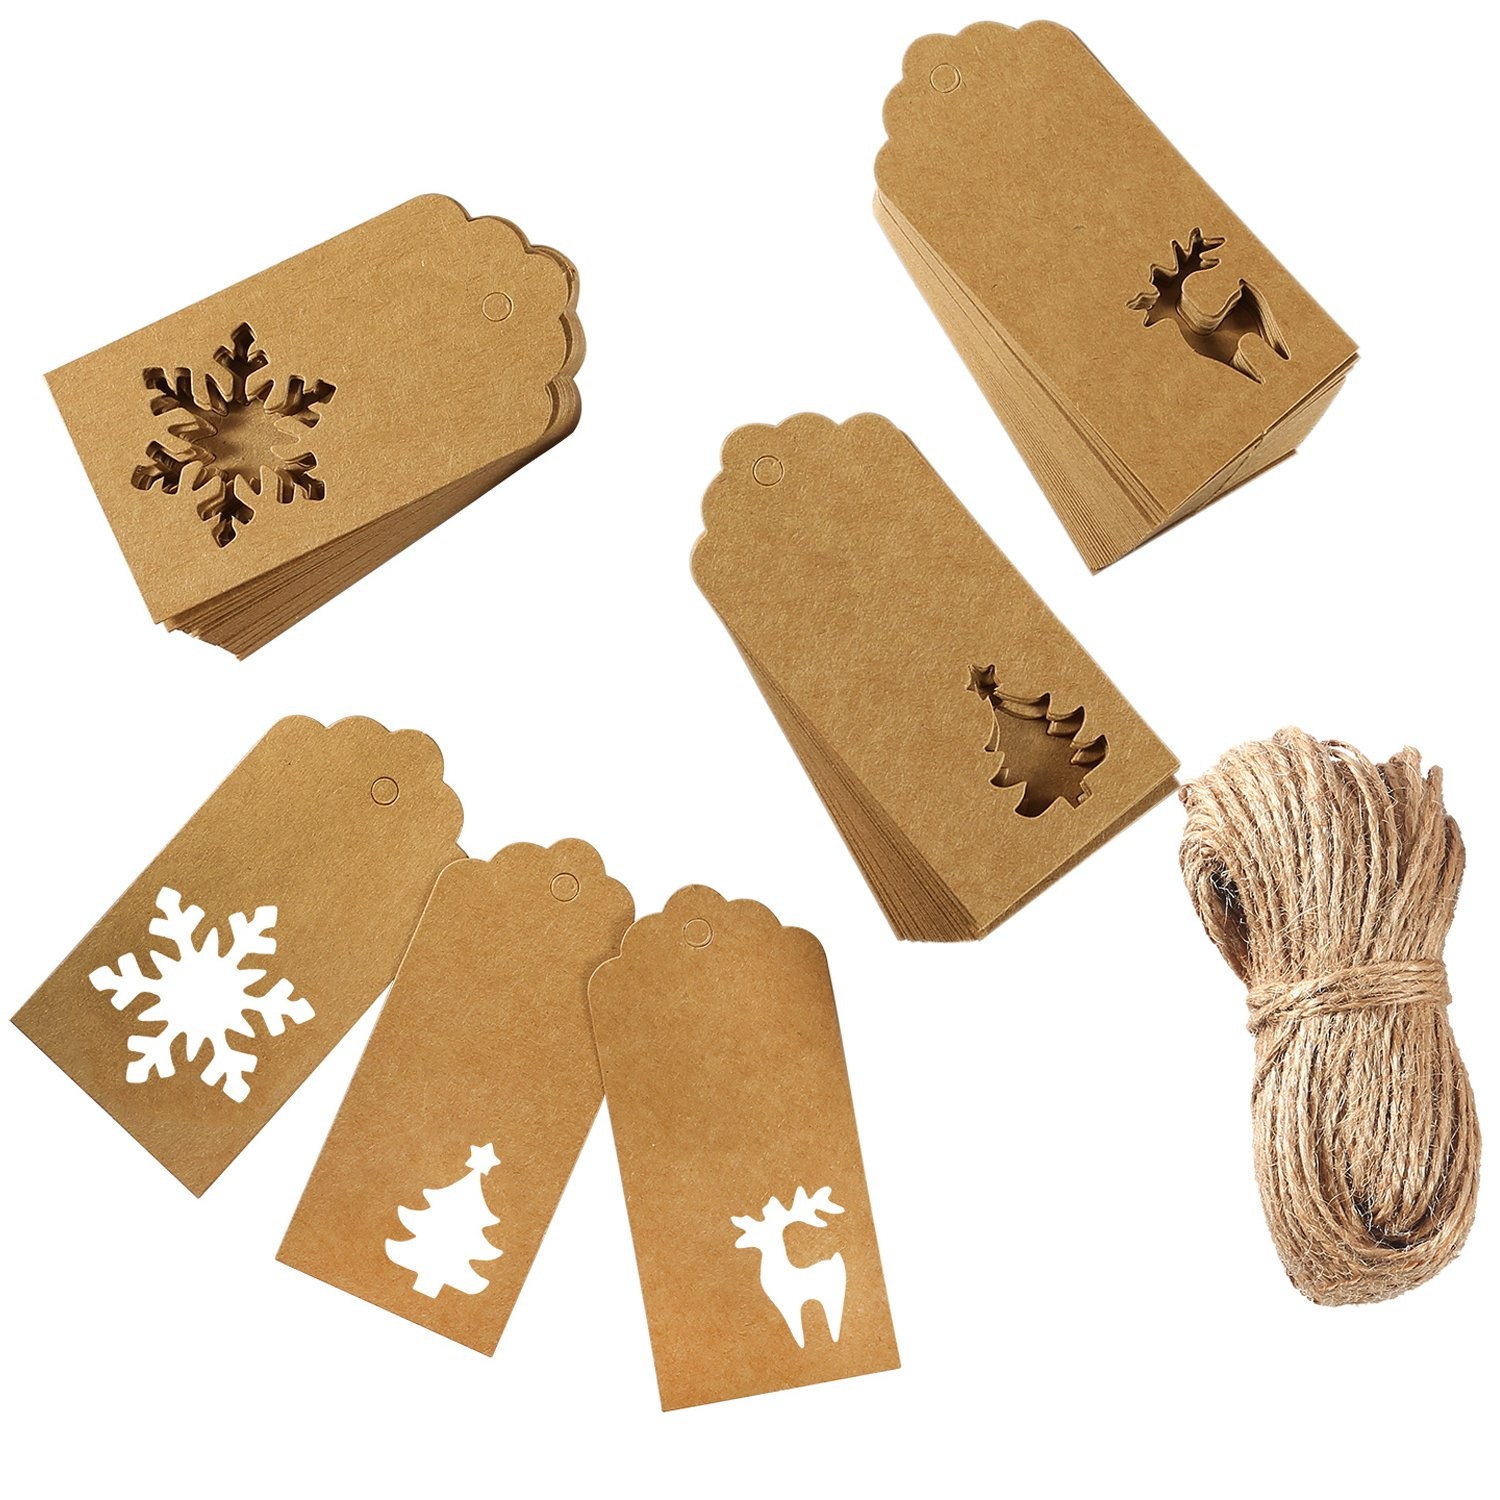 Aneco 150 Pieces Paper Tags Kraft Christmas Tags Hang Labels Christmas Tree Snowflake Reindeer Design for Christmas Gift Favor,DIY Arts and Crafts Wedding Supply with 30 Meters Twine (Brown)